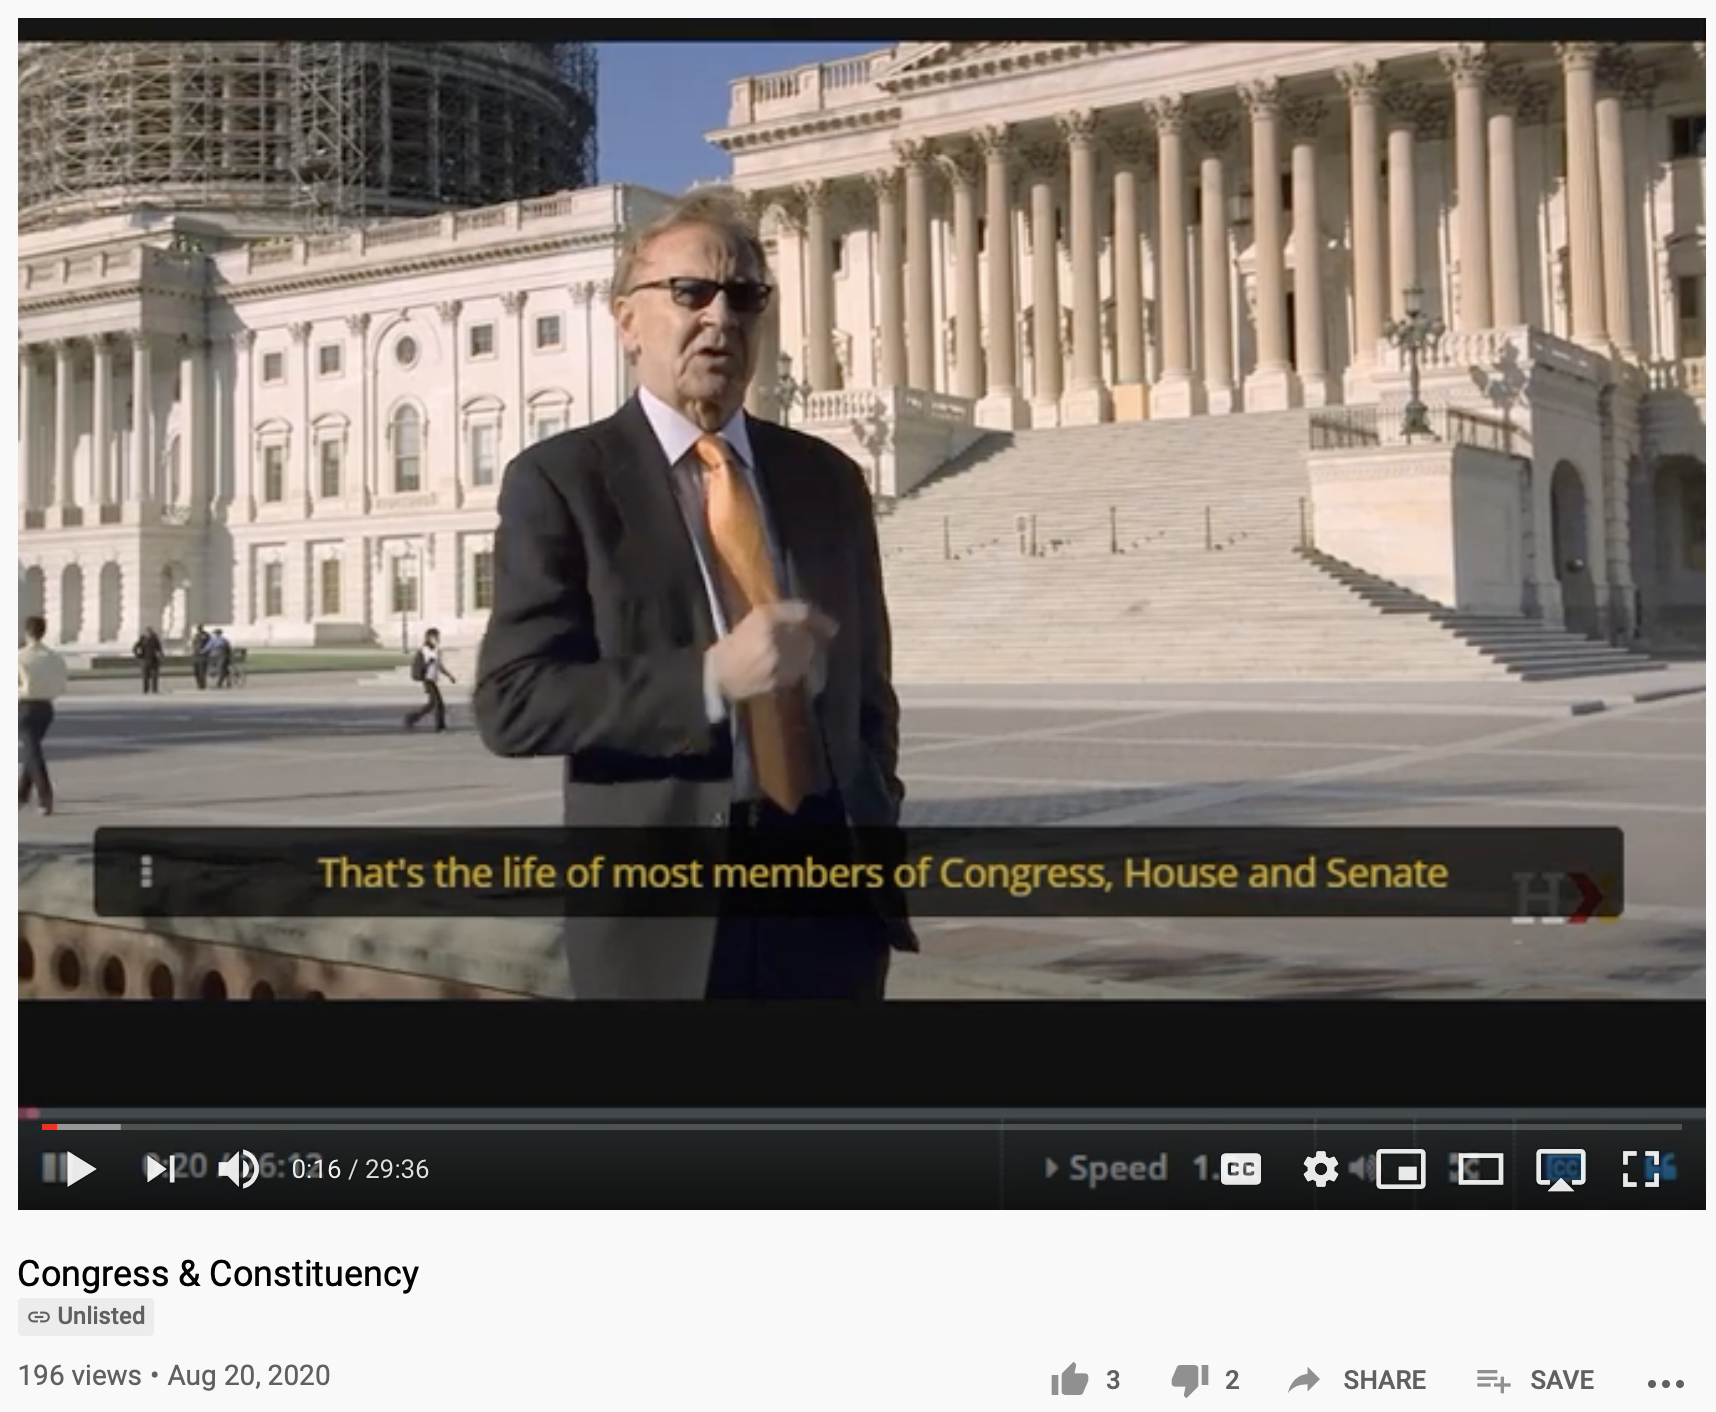 Video lecture with Harvard Professor, William Patterson, on Congress & Constituency available on YouTube and his HarvardX/EdX page.